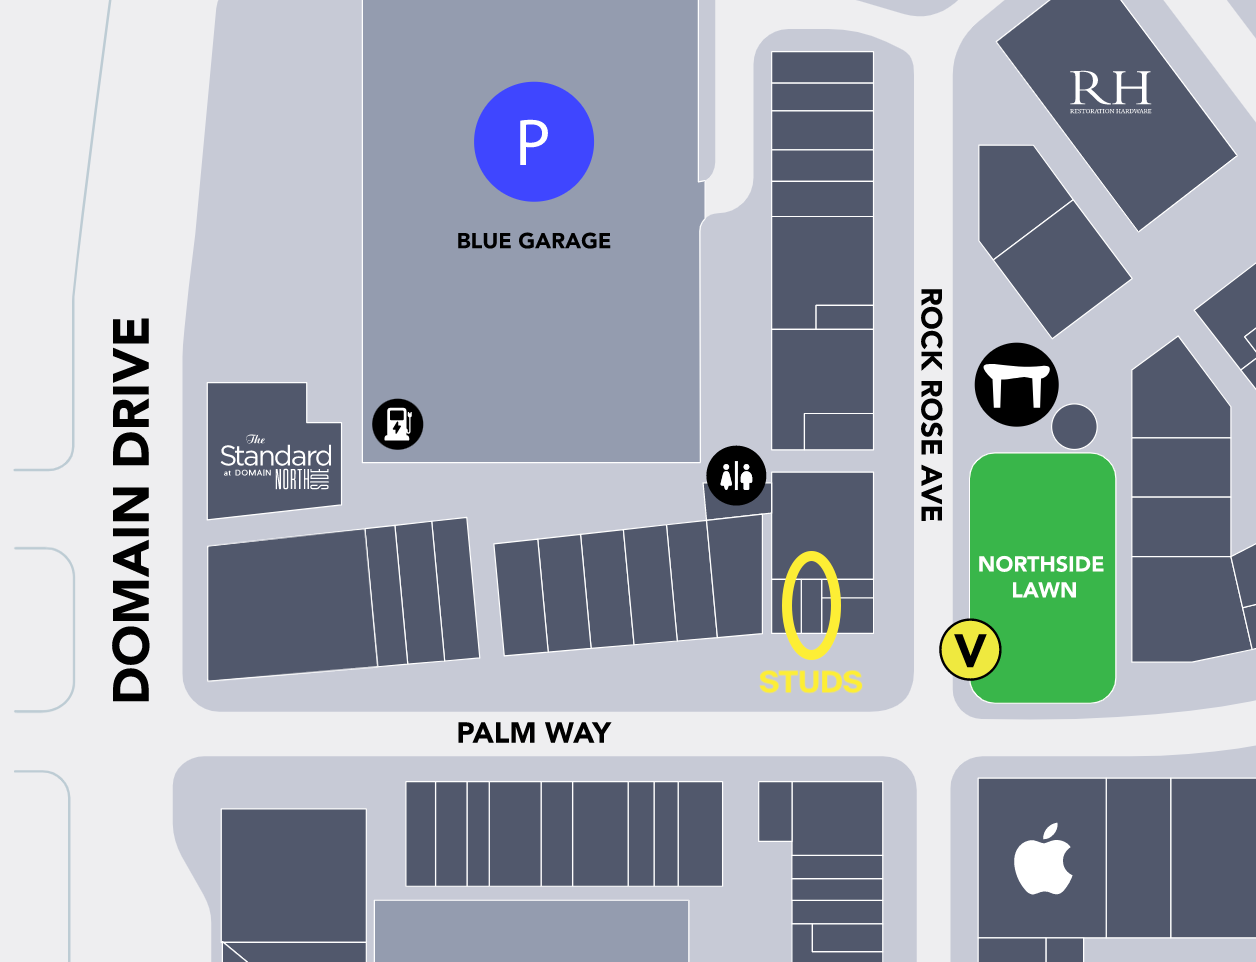 A mall map indicating where the STUDS store is in the Century City mall.